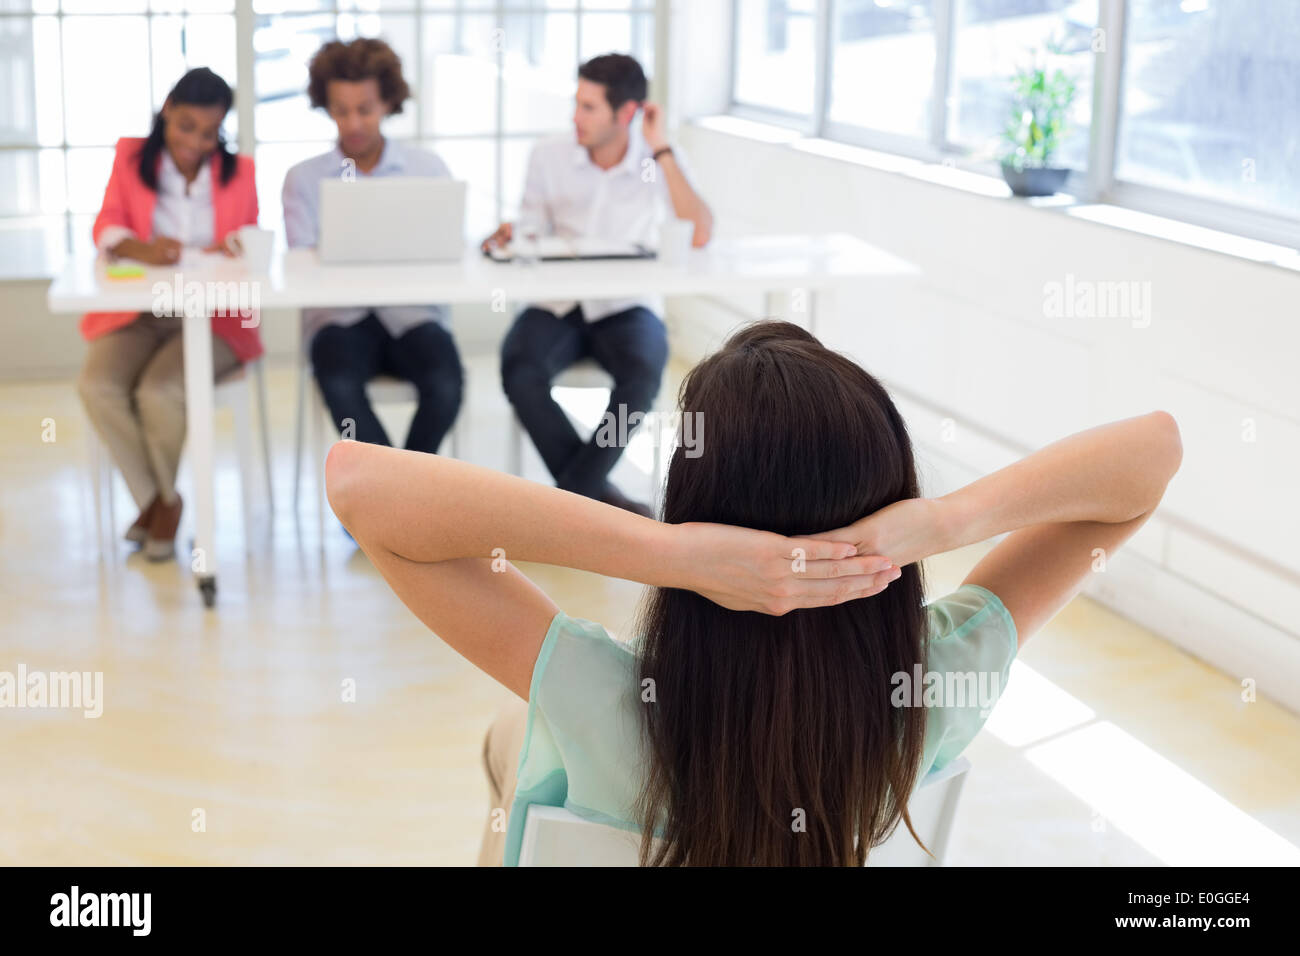 Businesswoman relaxes with hands behind her head - Stock Image